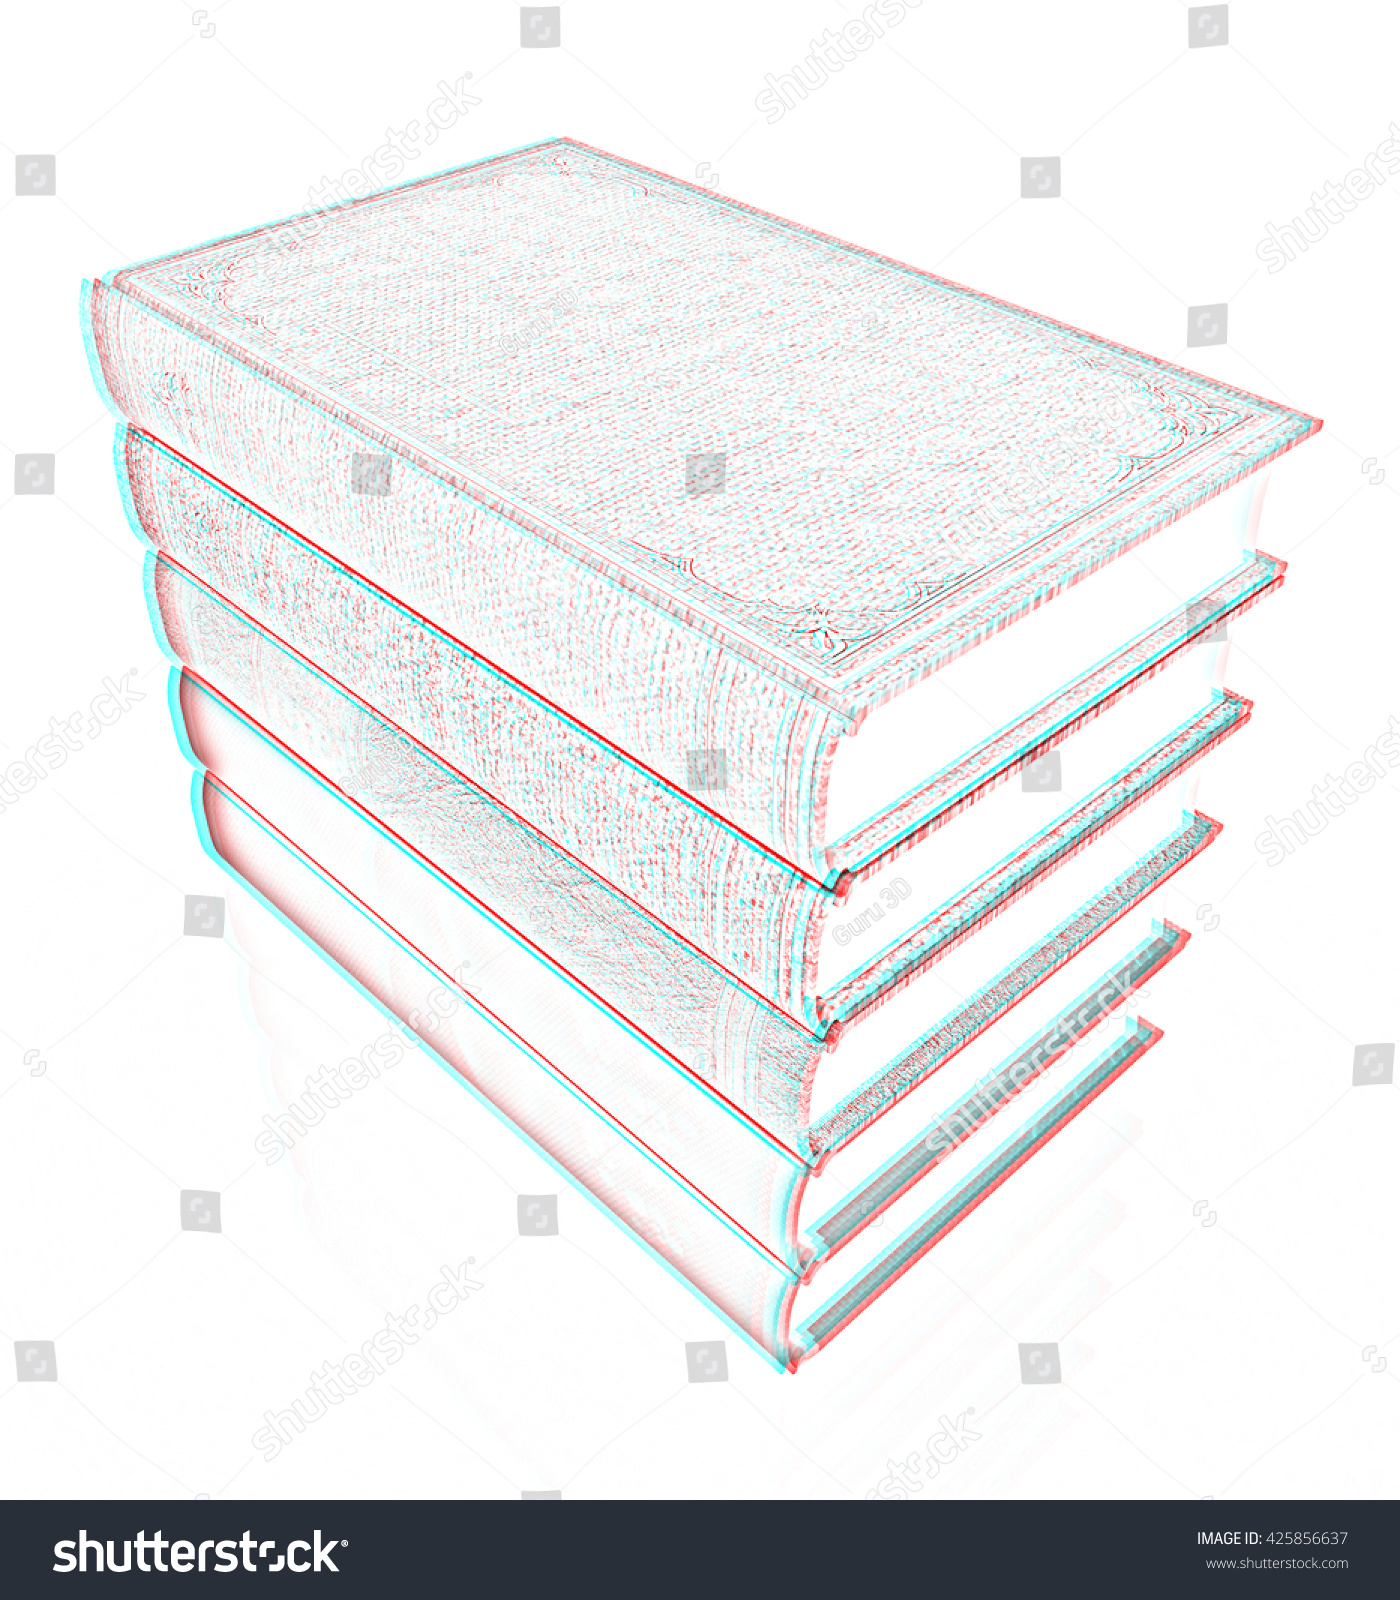 The stack of books on a white background pencil drawing 3d illustration anaglyph view with red cyan glasses to see in 3d ez canvas